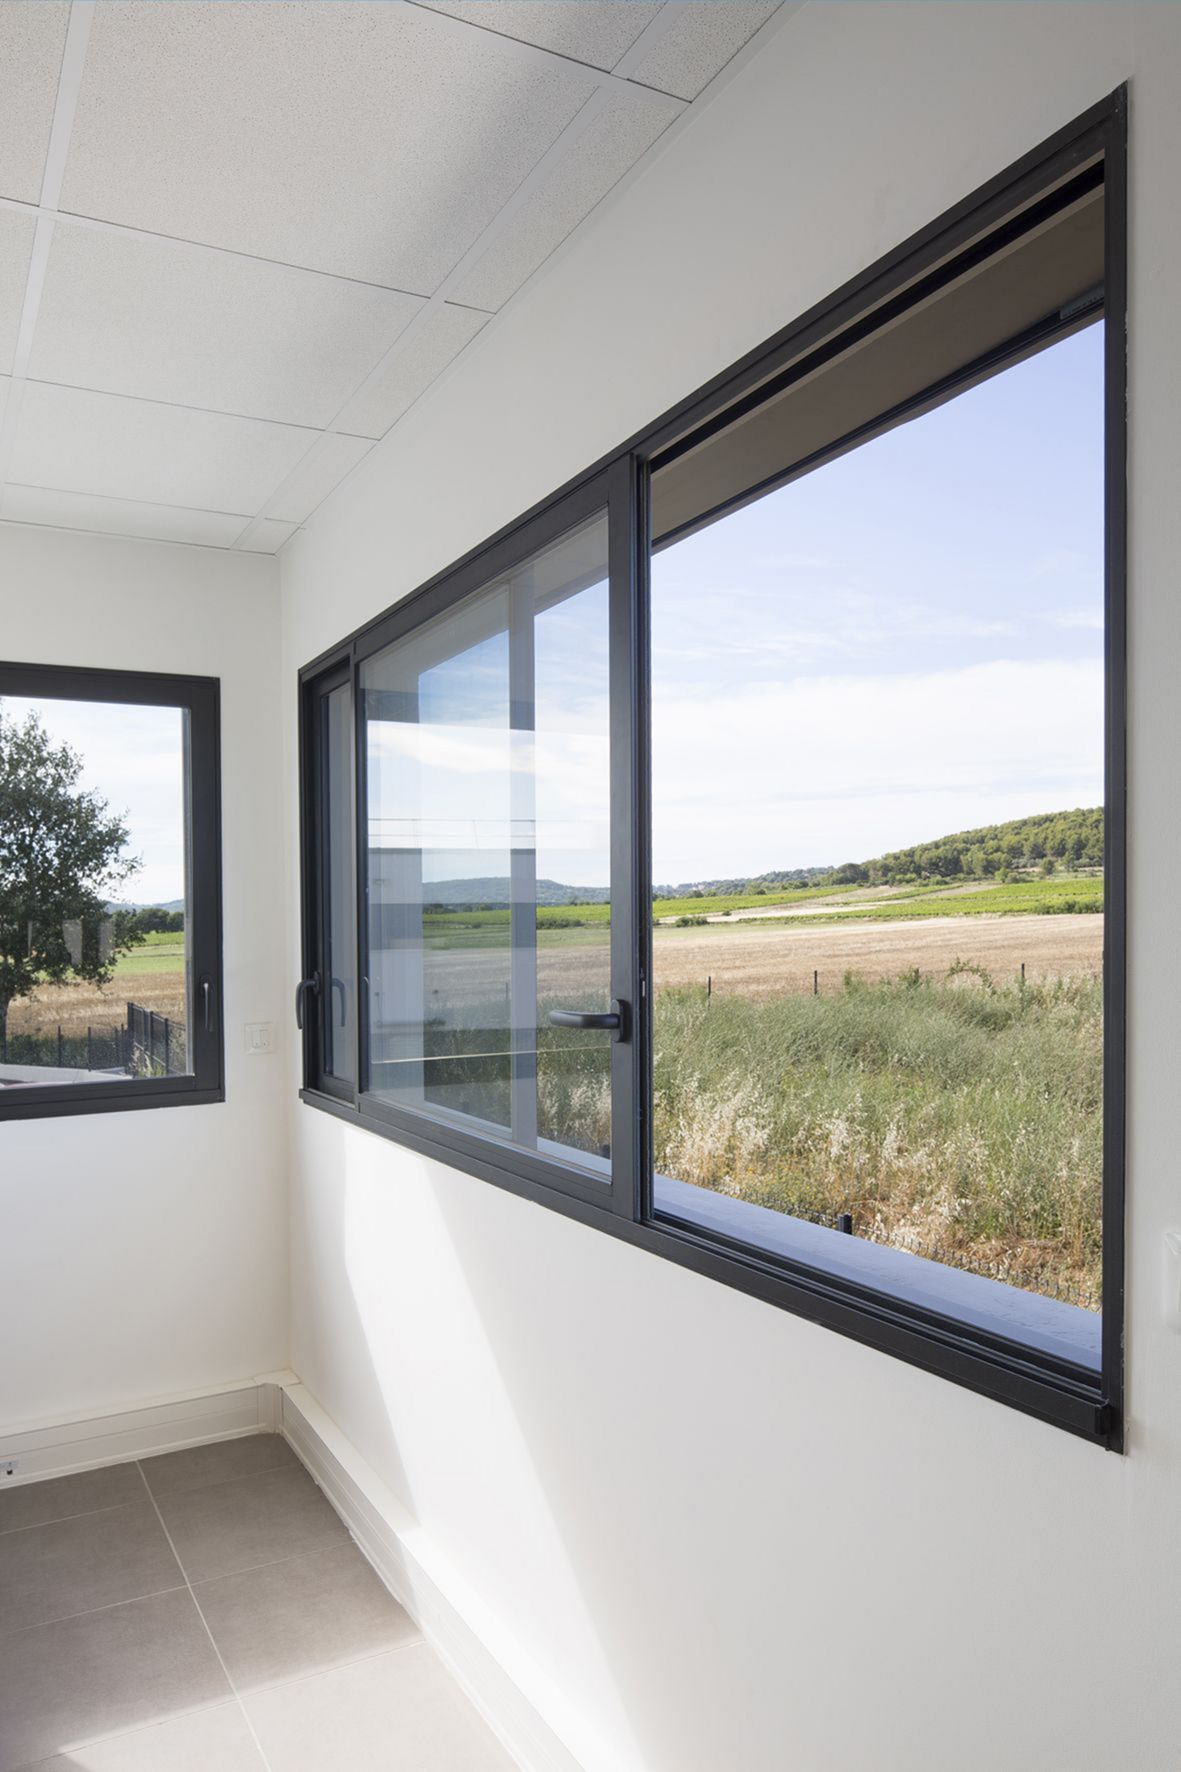 Business Design A House And Window: 15 Minimalist Window Design Ideas For You To Realize In Your Home (With Images)